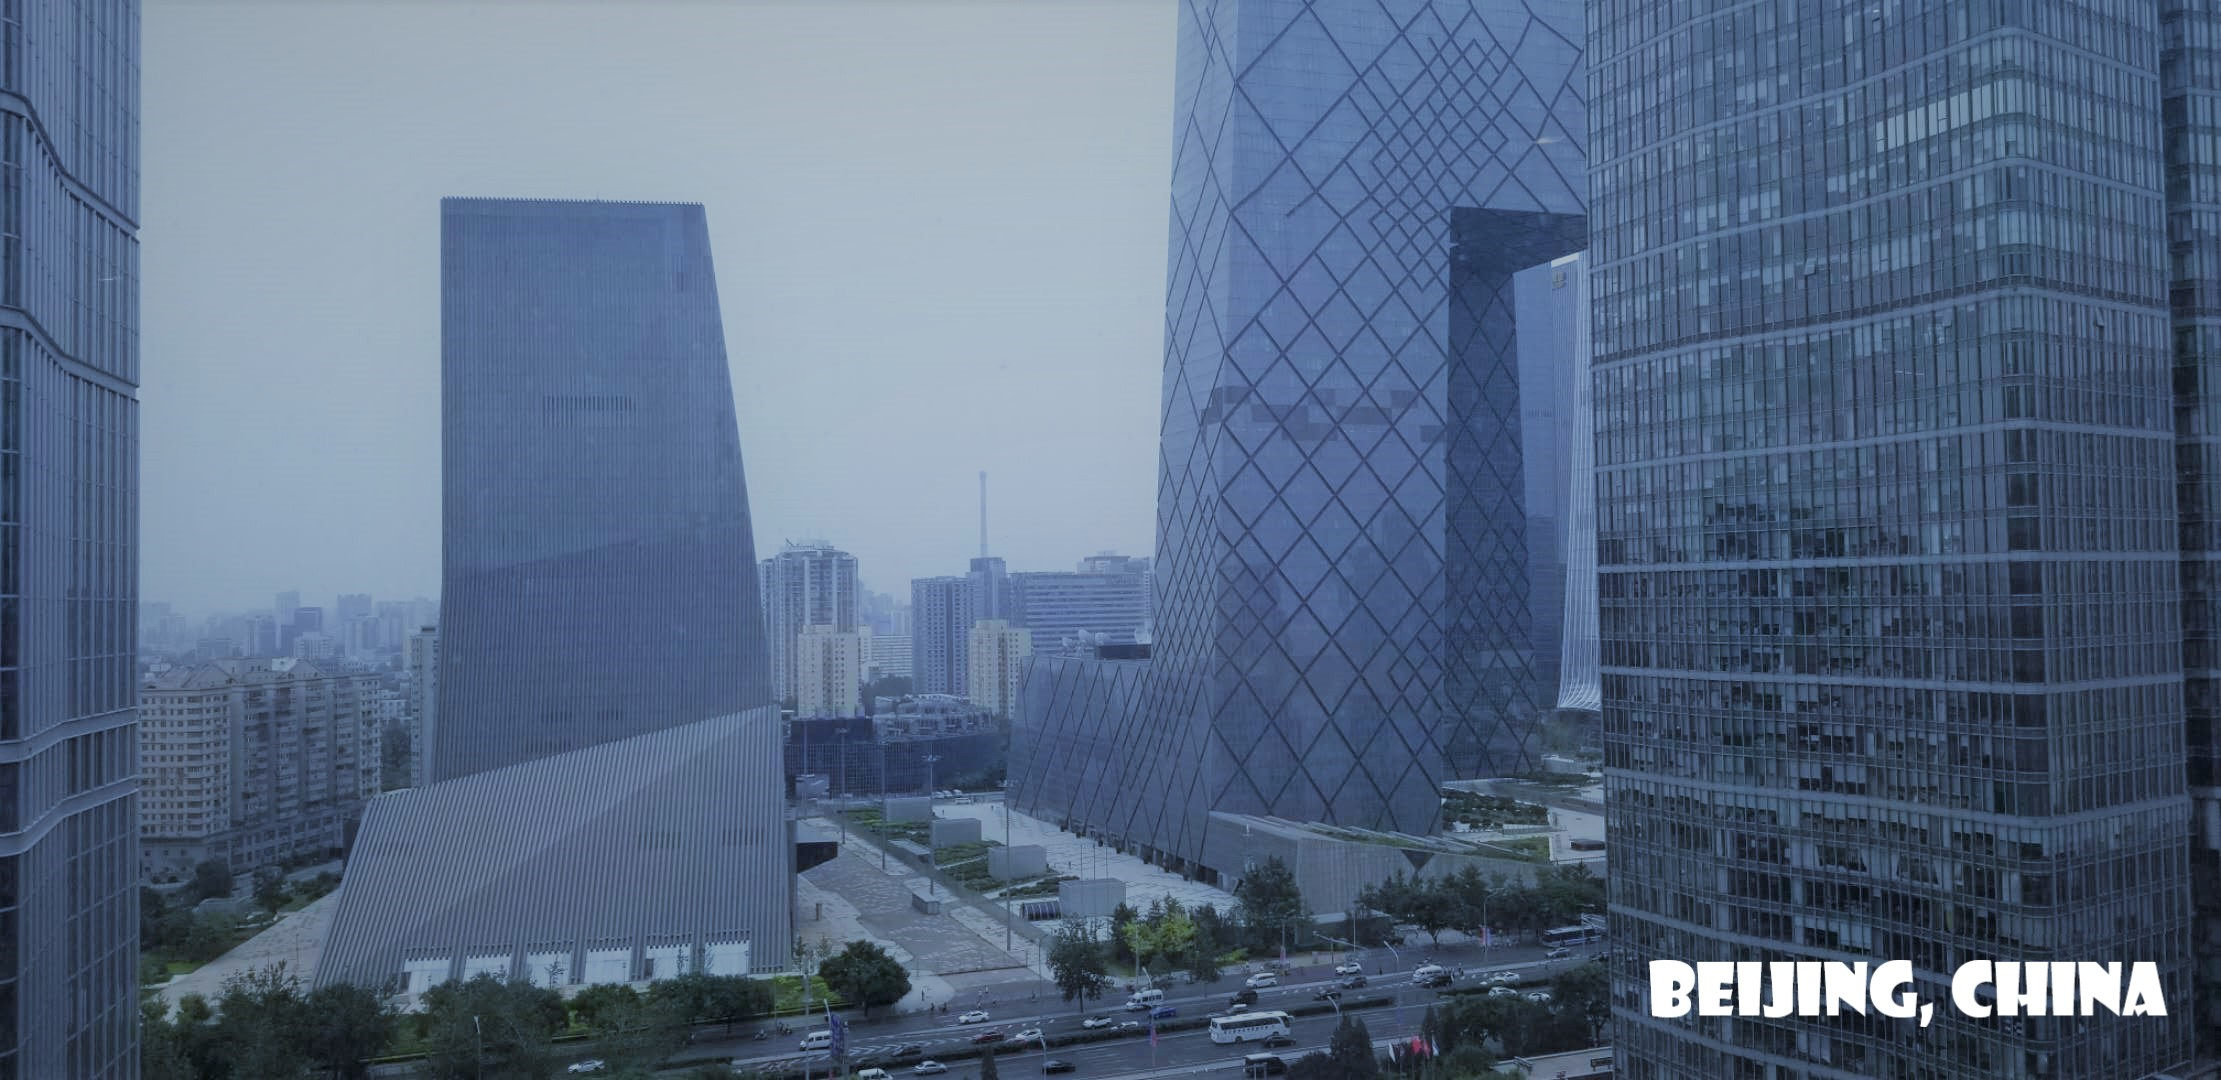 Po angielsku: Pandemic, power crunch and real estate market in China. Plus common prosperity.